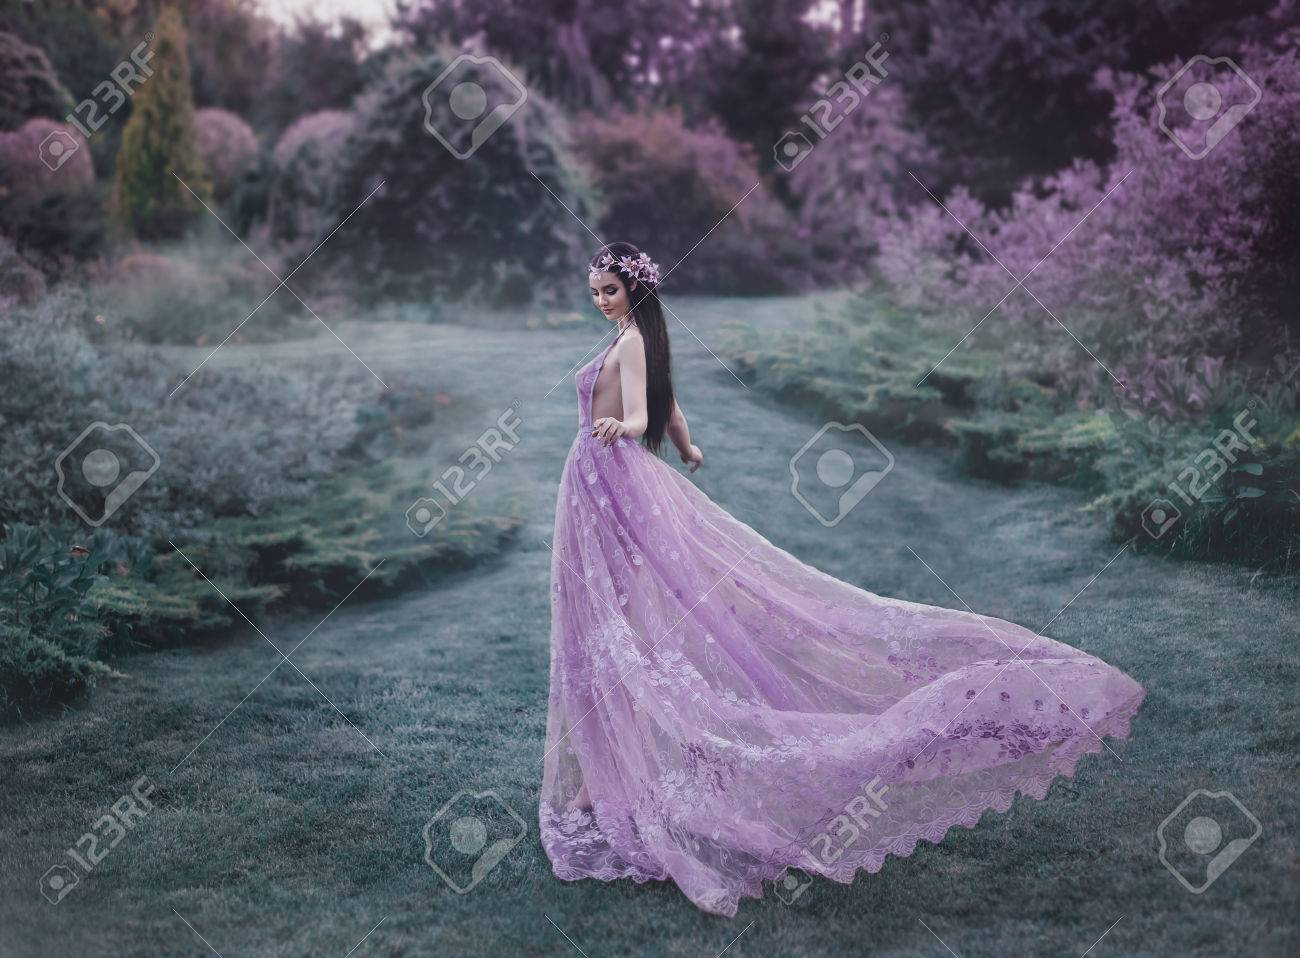 Luxurious Fantasy Girl A Fantasy Girl A Fairy Young Elf A Purple Fairy Garden Railroad Archerfield Walled Garden Fairy Training A Purple Dress A Fairy Young Elf garden Fairy Garden Train